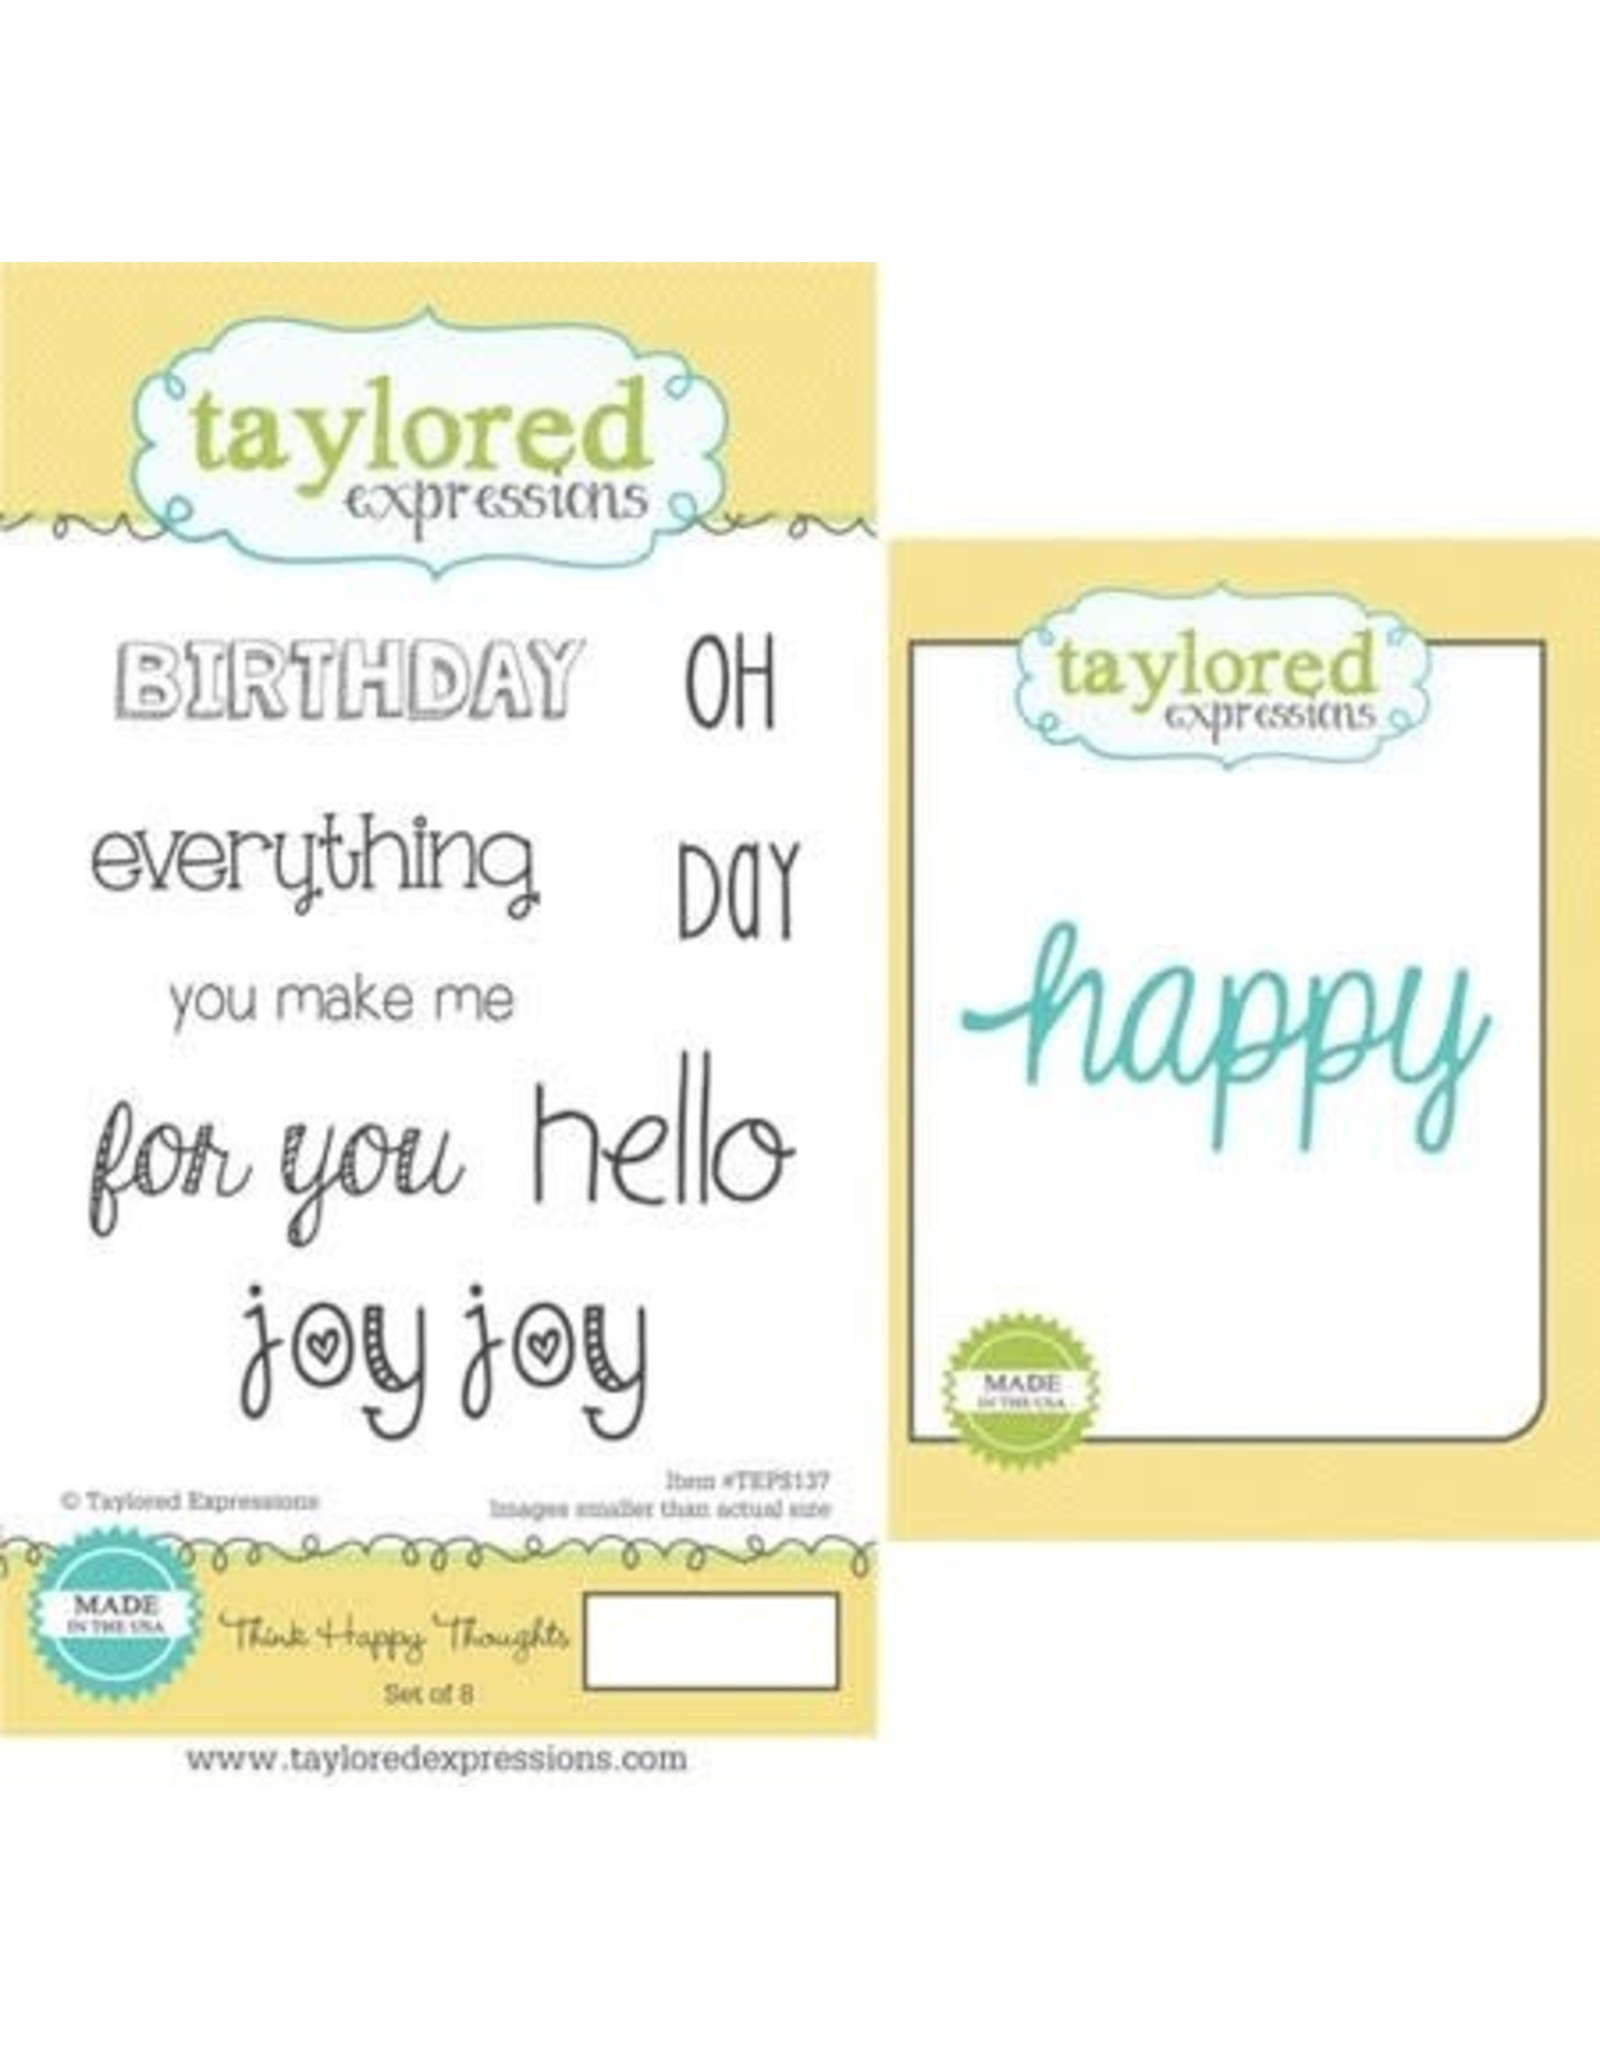 Taylored Expressions Think Happy Thoughts Stamp/Die Combo (RETIRED) (25%)